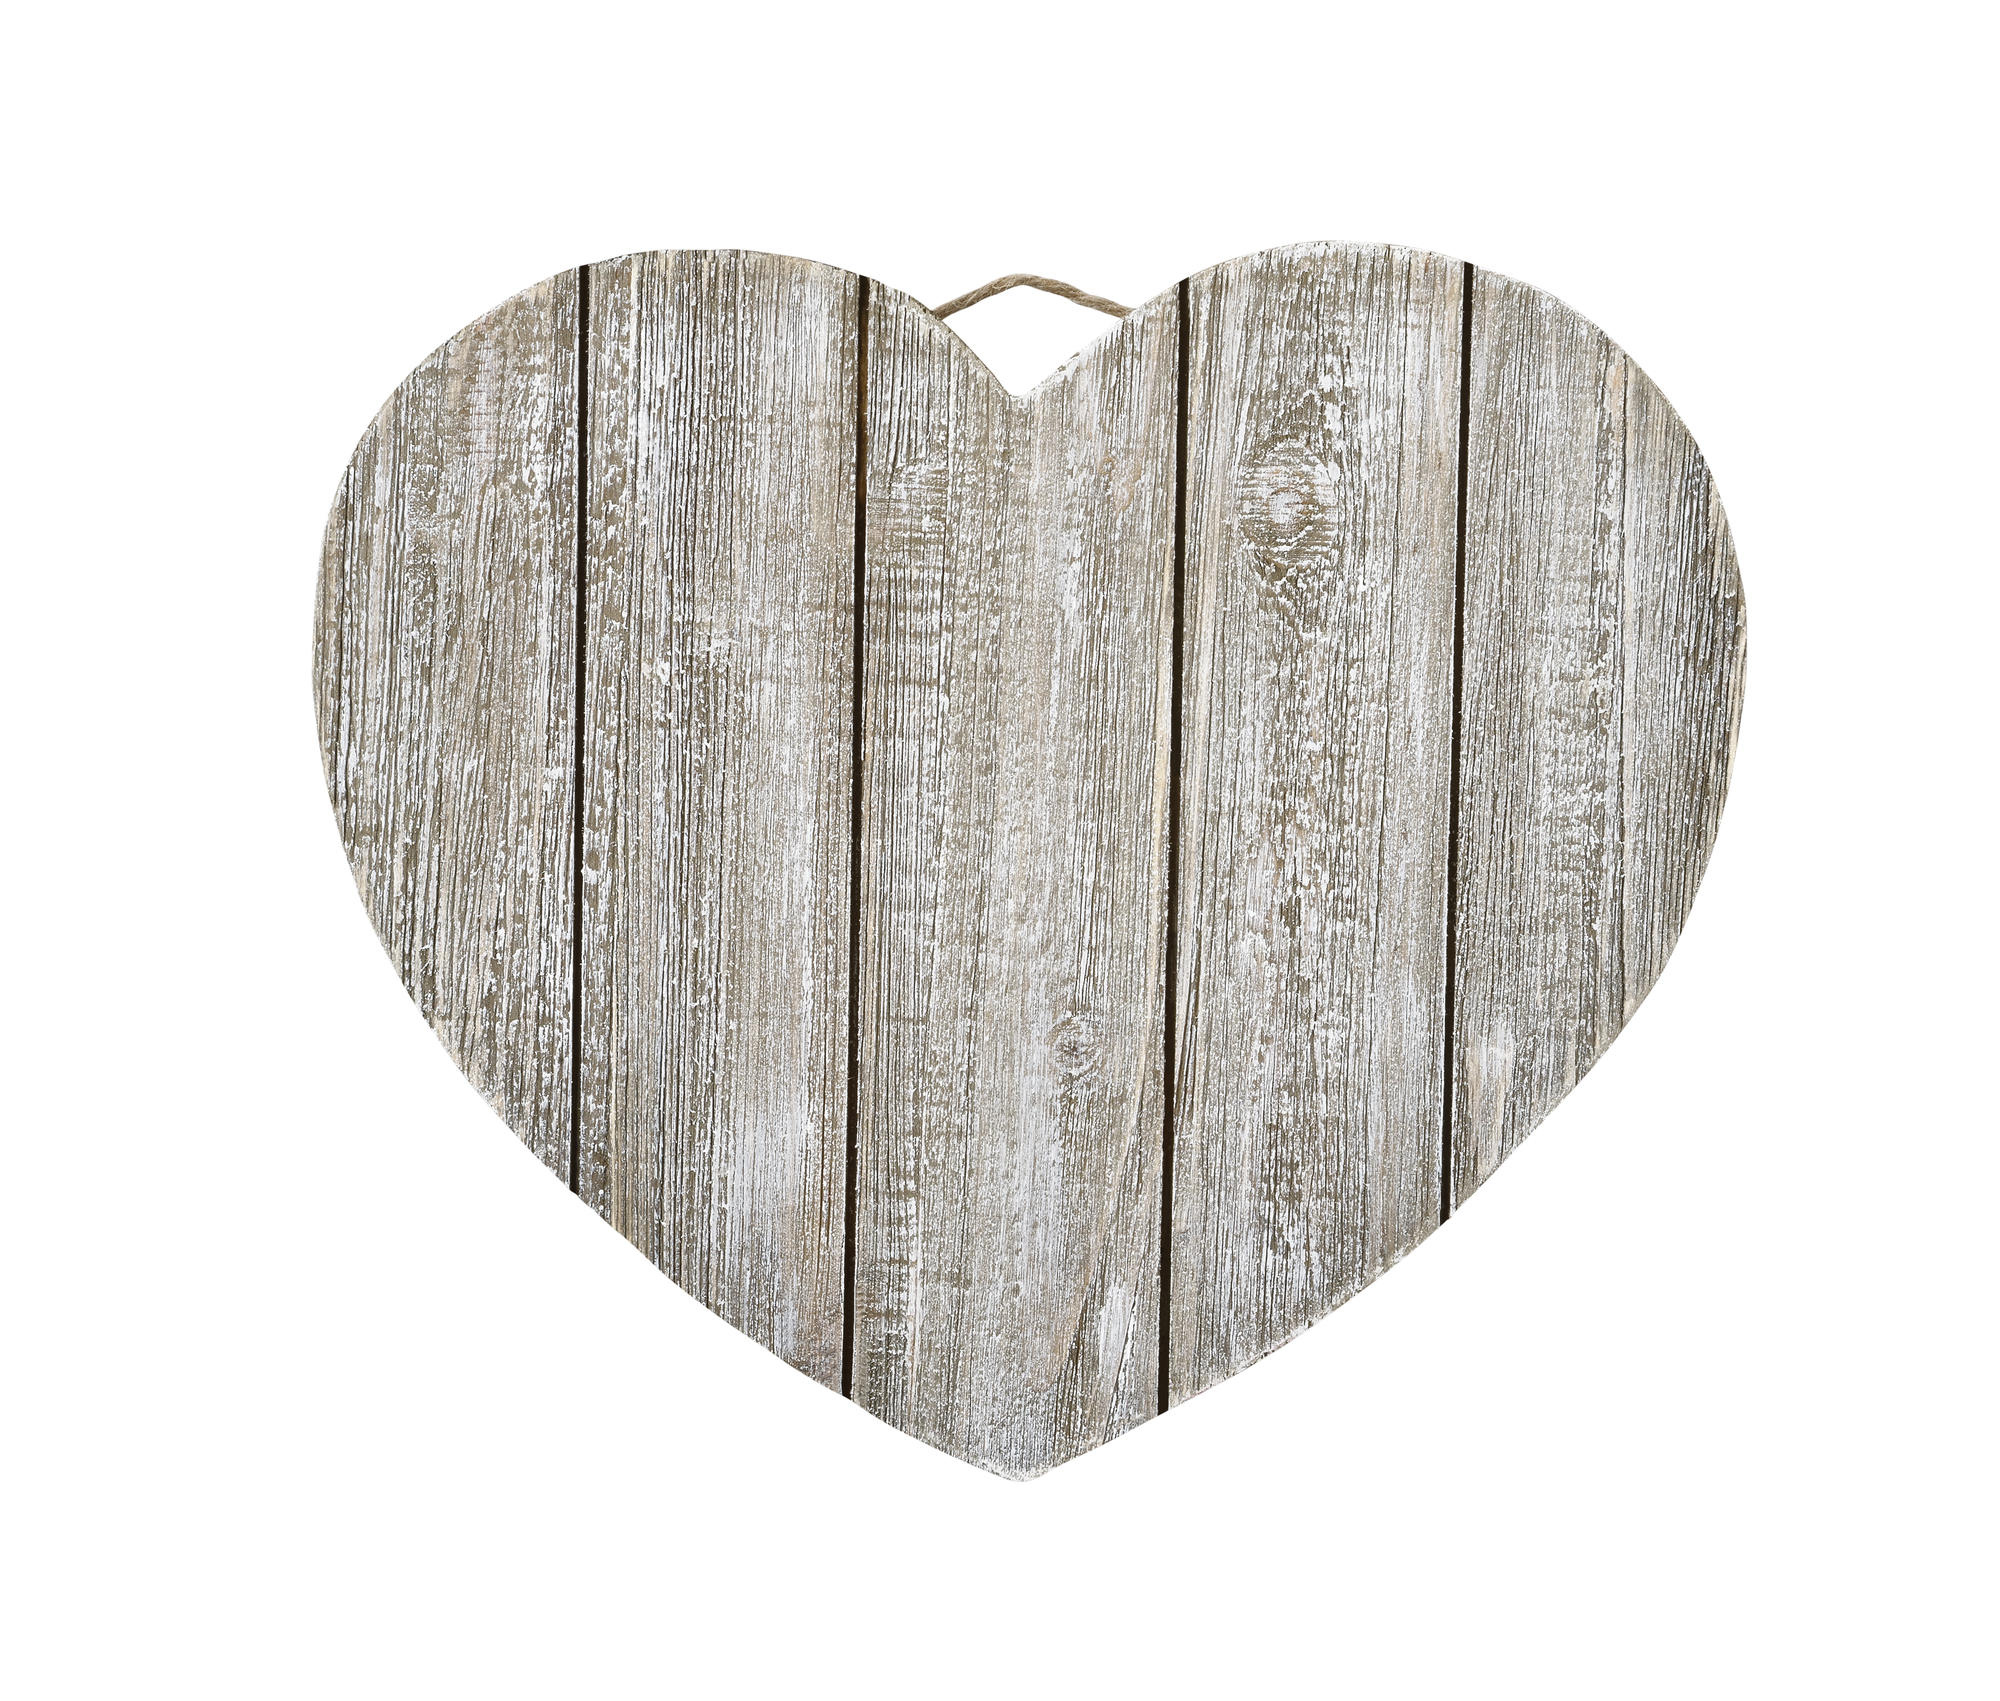 style selections 759in w x 423ft l aged gray oak smooth wood gray wash heart plaque by artminds